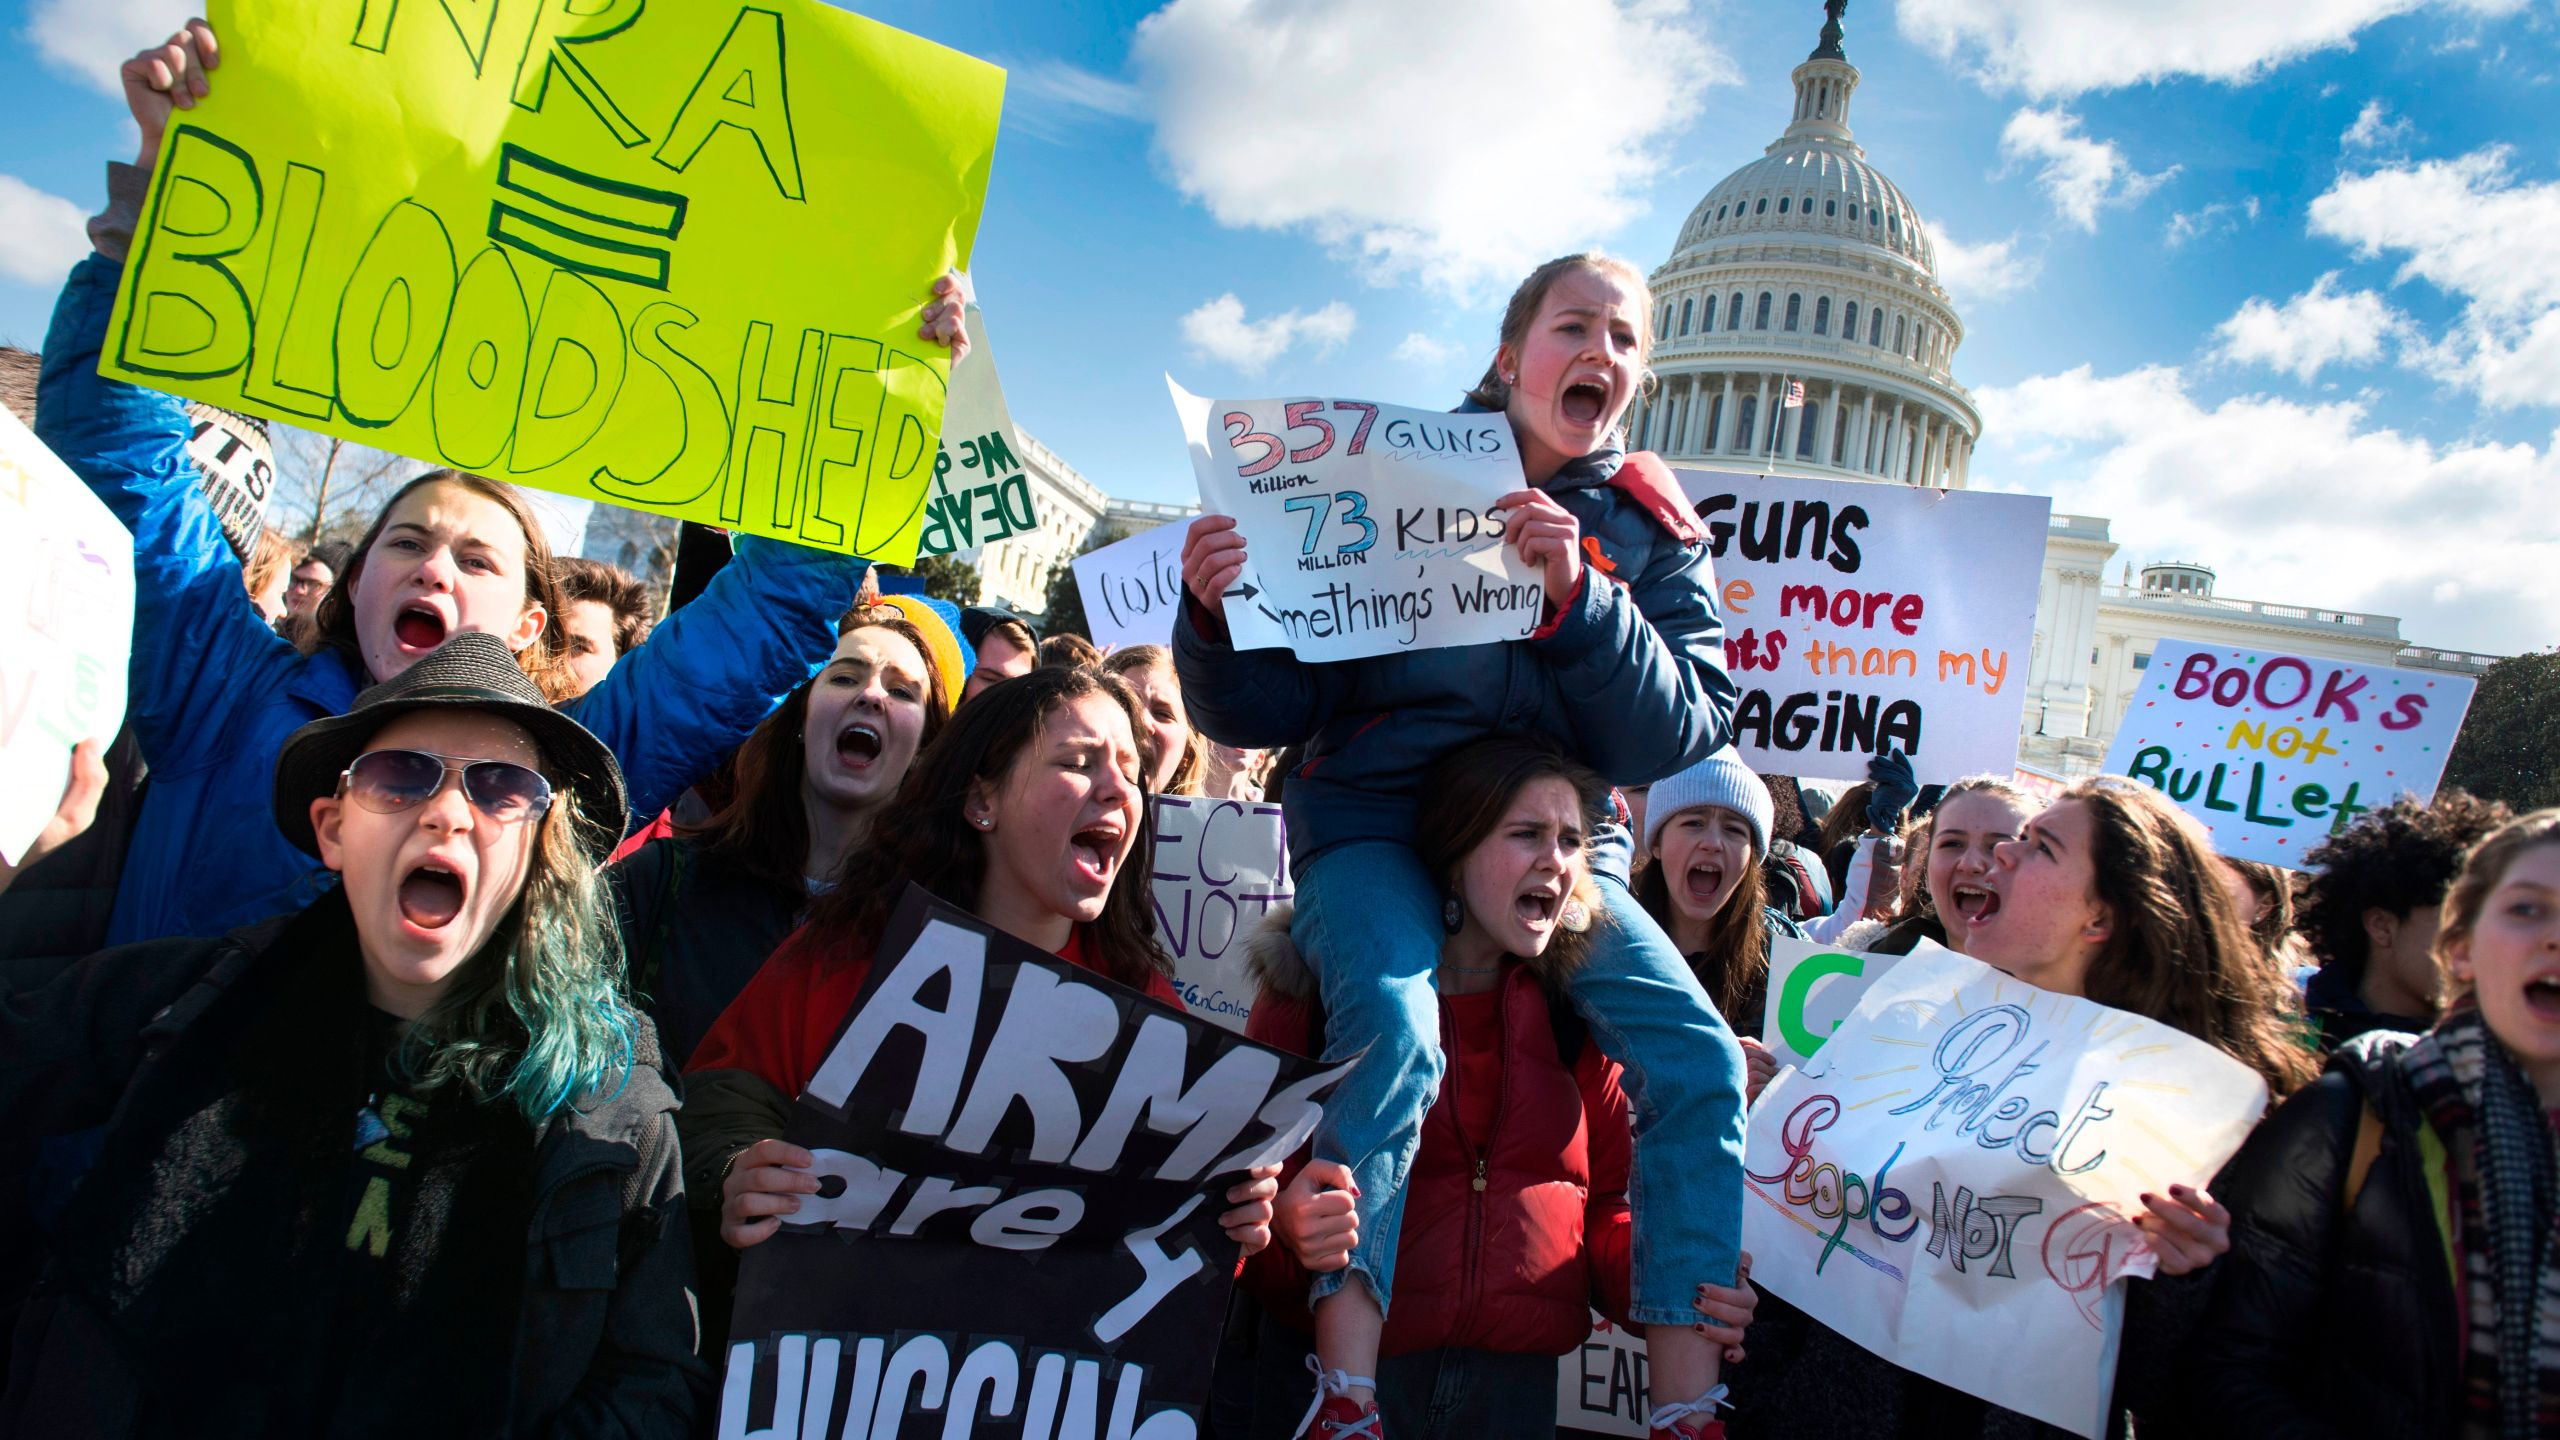 """Students participate in a rally on Capitol Hill with other students from DC, Maryland and Virginia in their Solidarity Walk-Out to urge Republican leaders in Congress """"to allow votes on gun violence prevention legislation,"""" March 14, 2018. (Credit: Jim Watson / AFP / Getty Images)"""